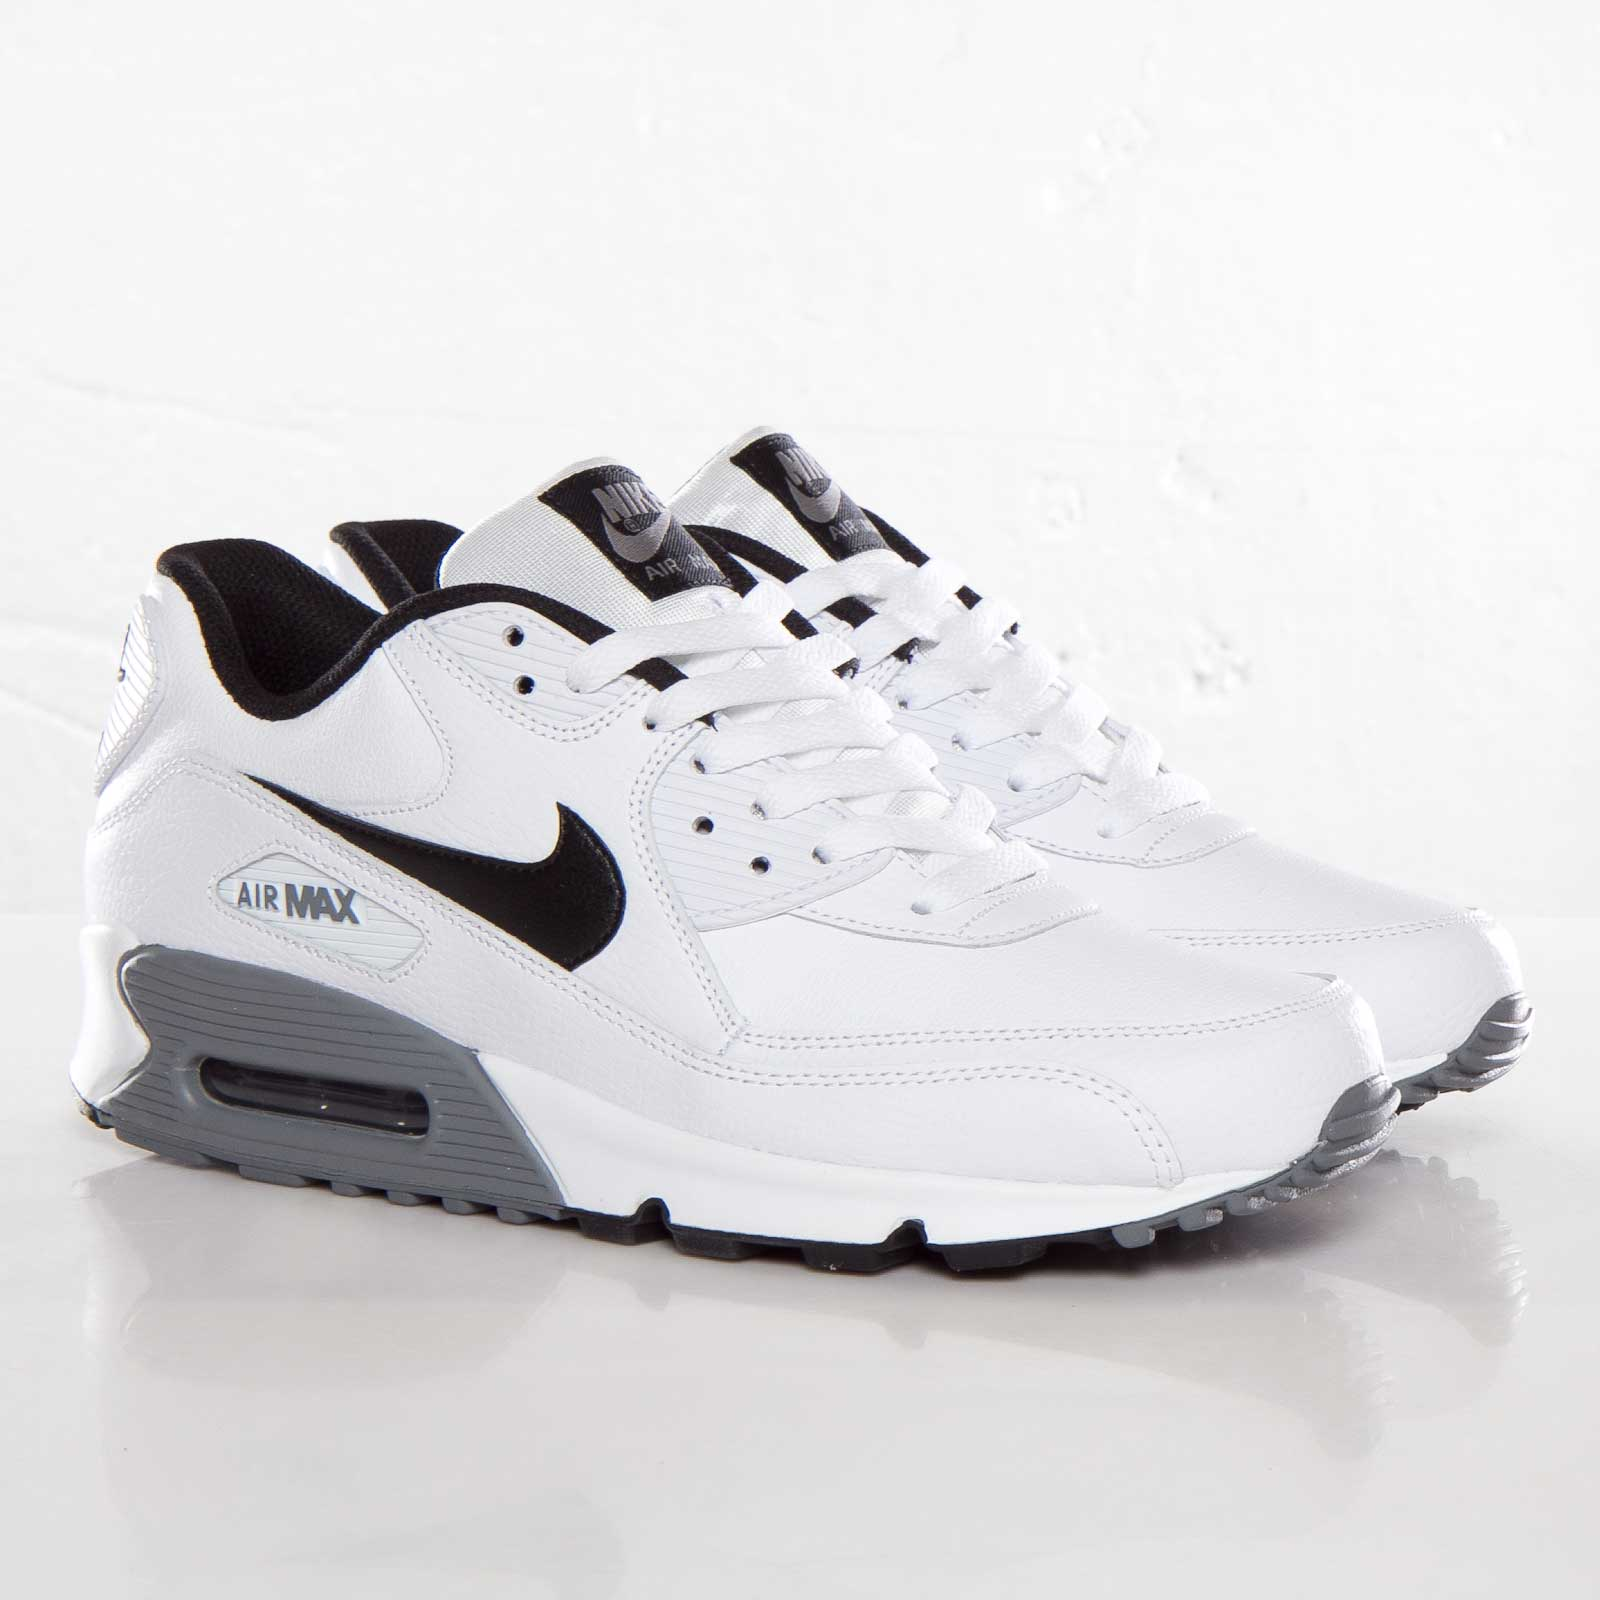 599521 100 MEN Nike Air Max 90 Essential LTR Running Shoes